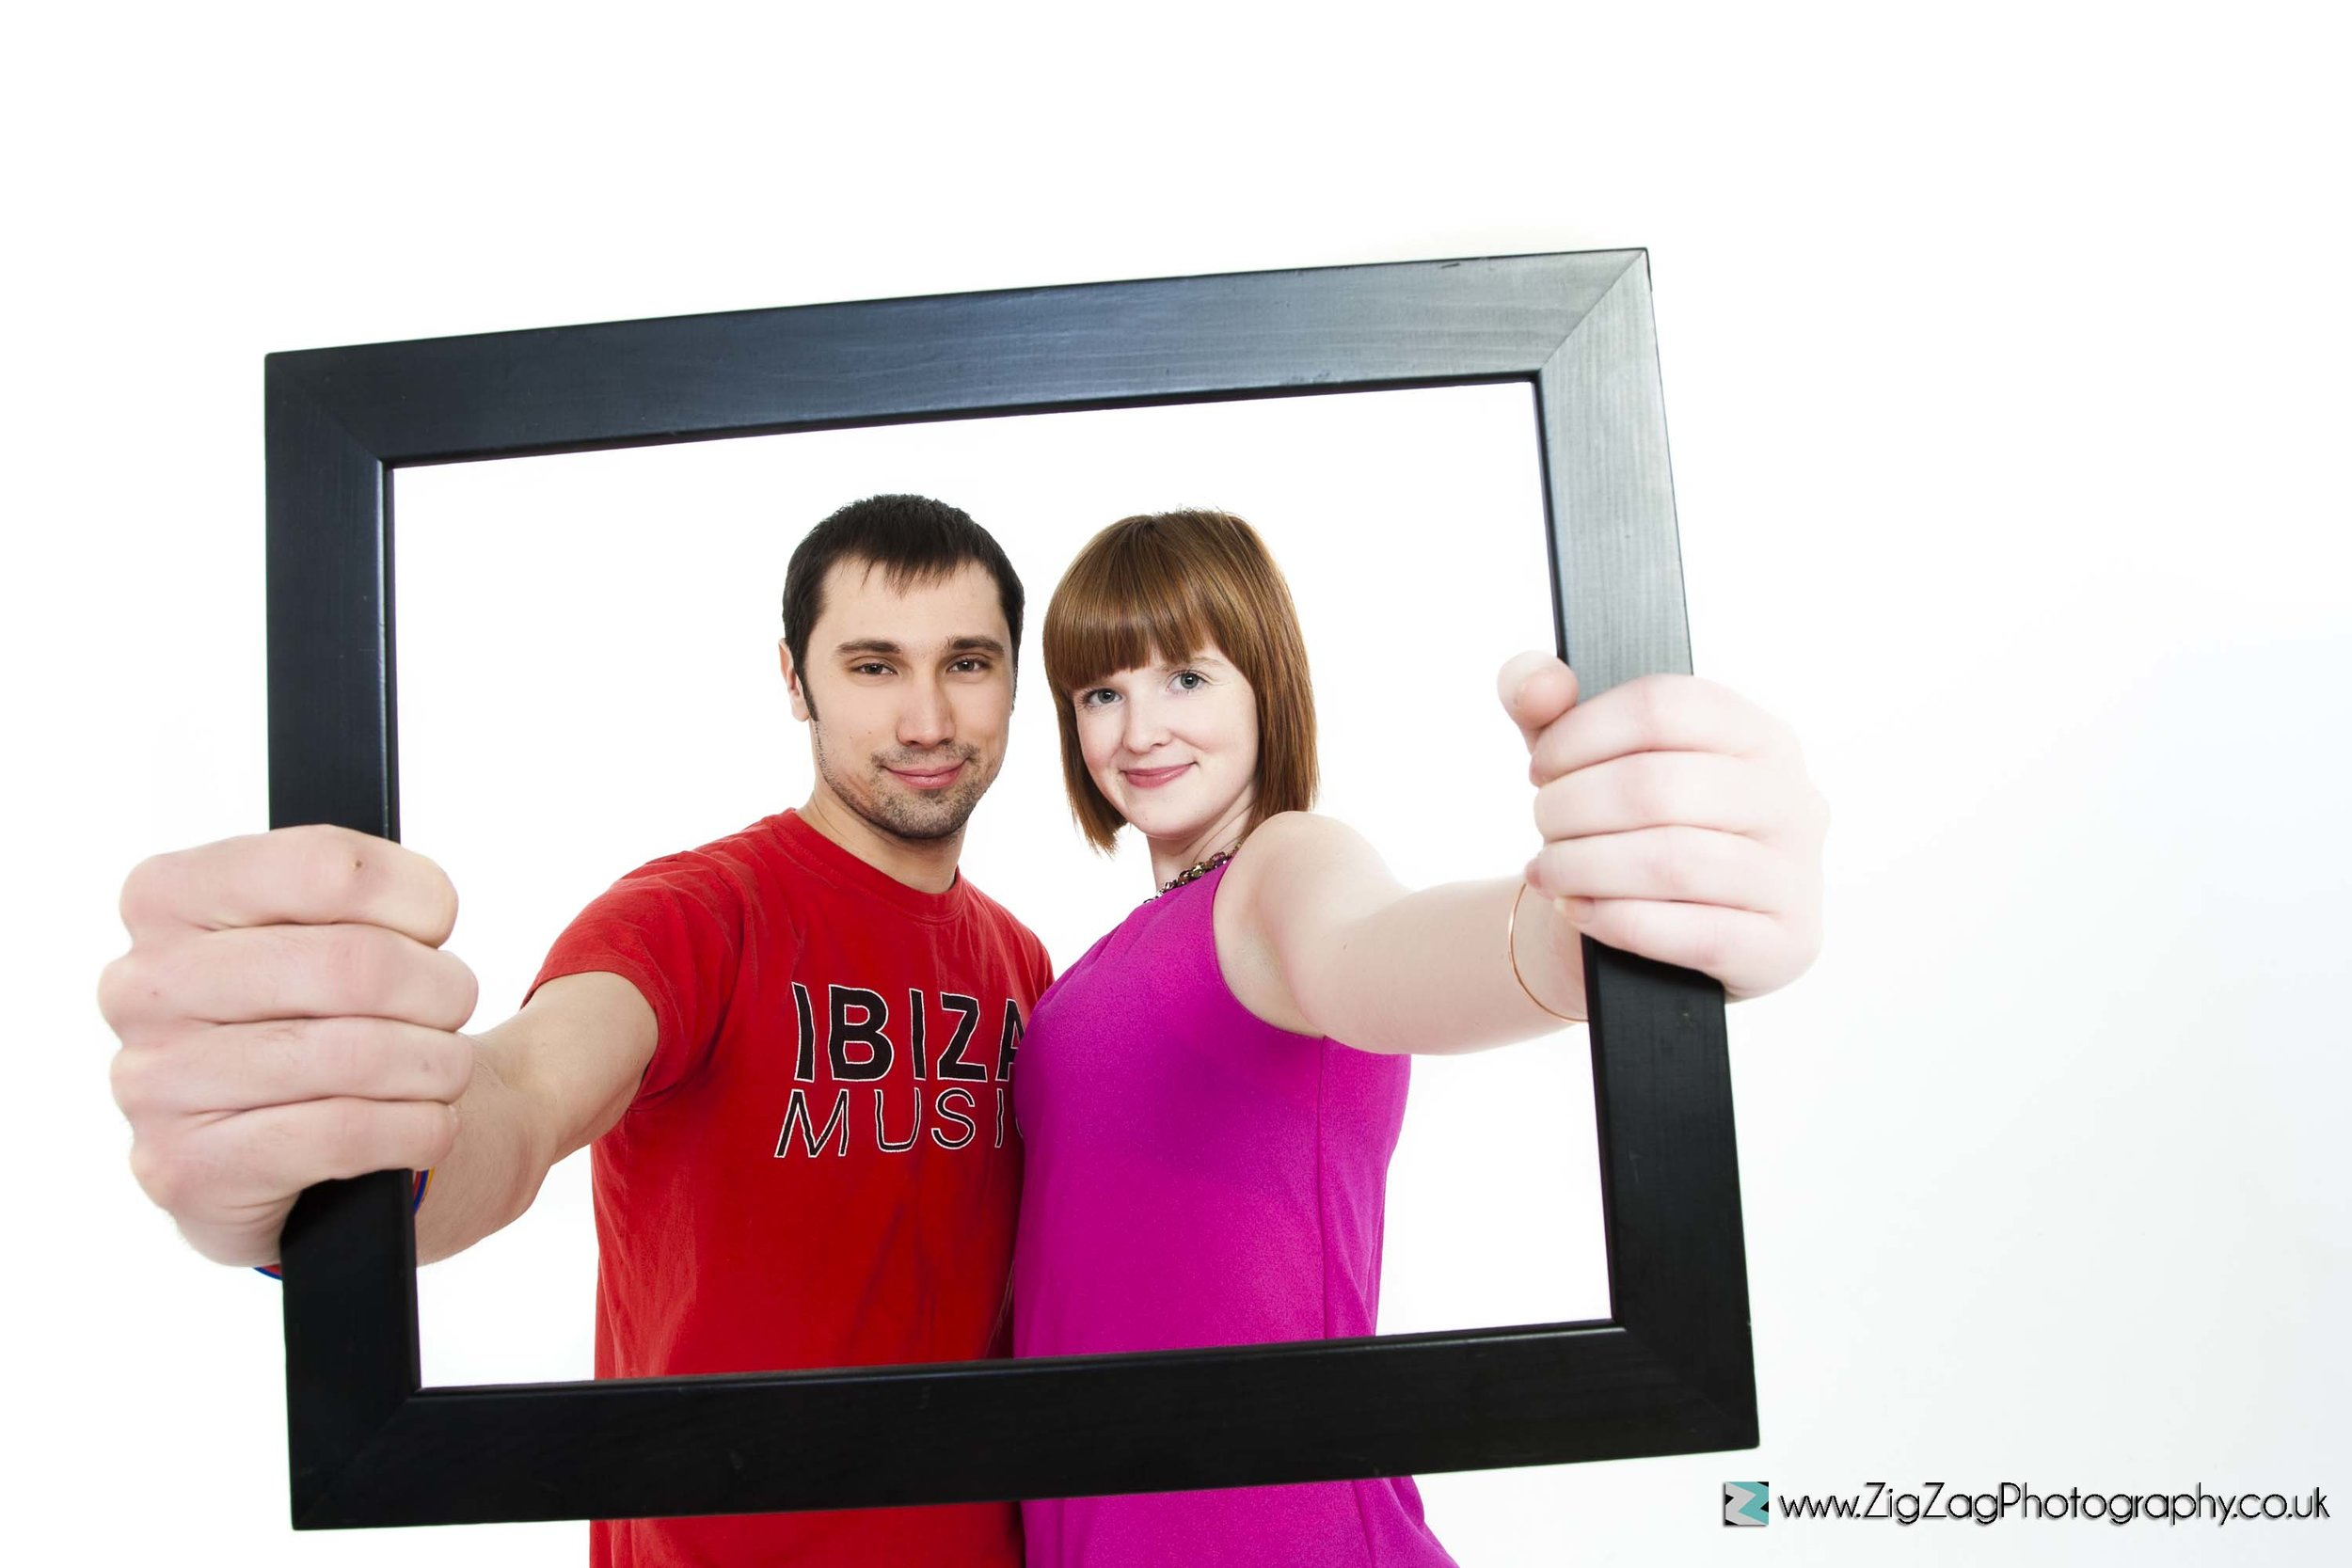 photography-session-leicester-studio-photoshoot-zigzag-couple-love-picture-frame-ideas-props-pink-red.jpg